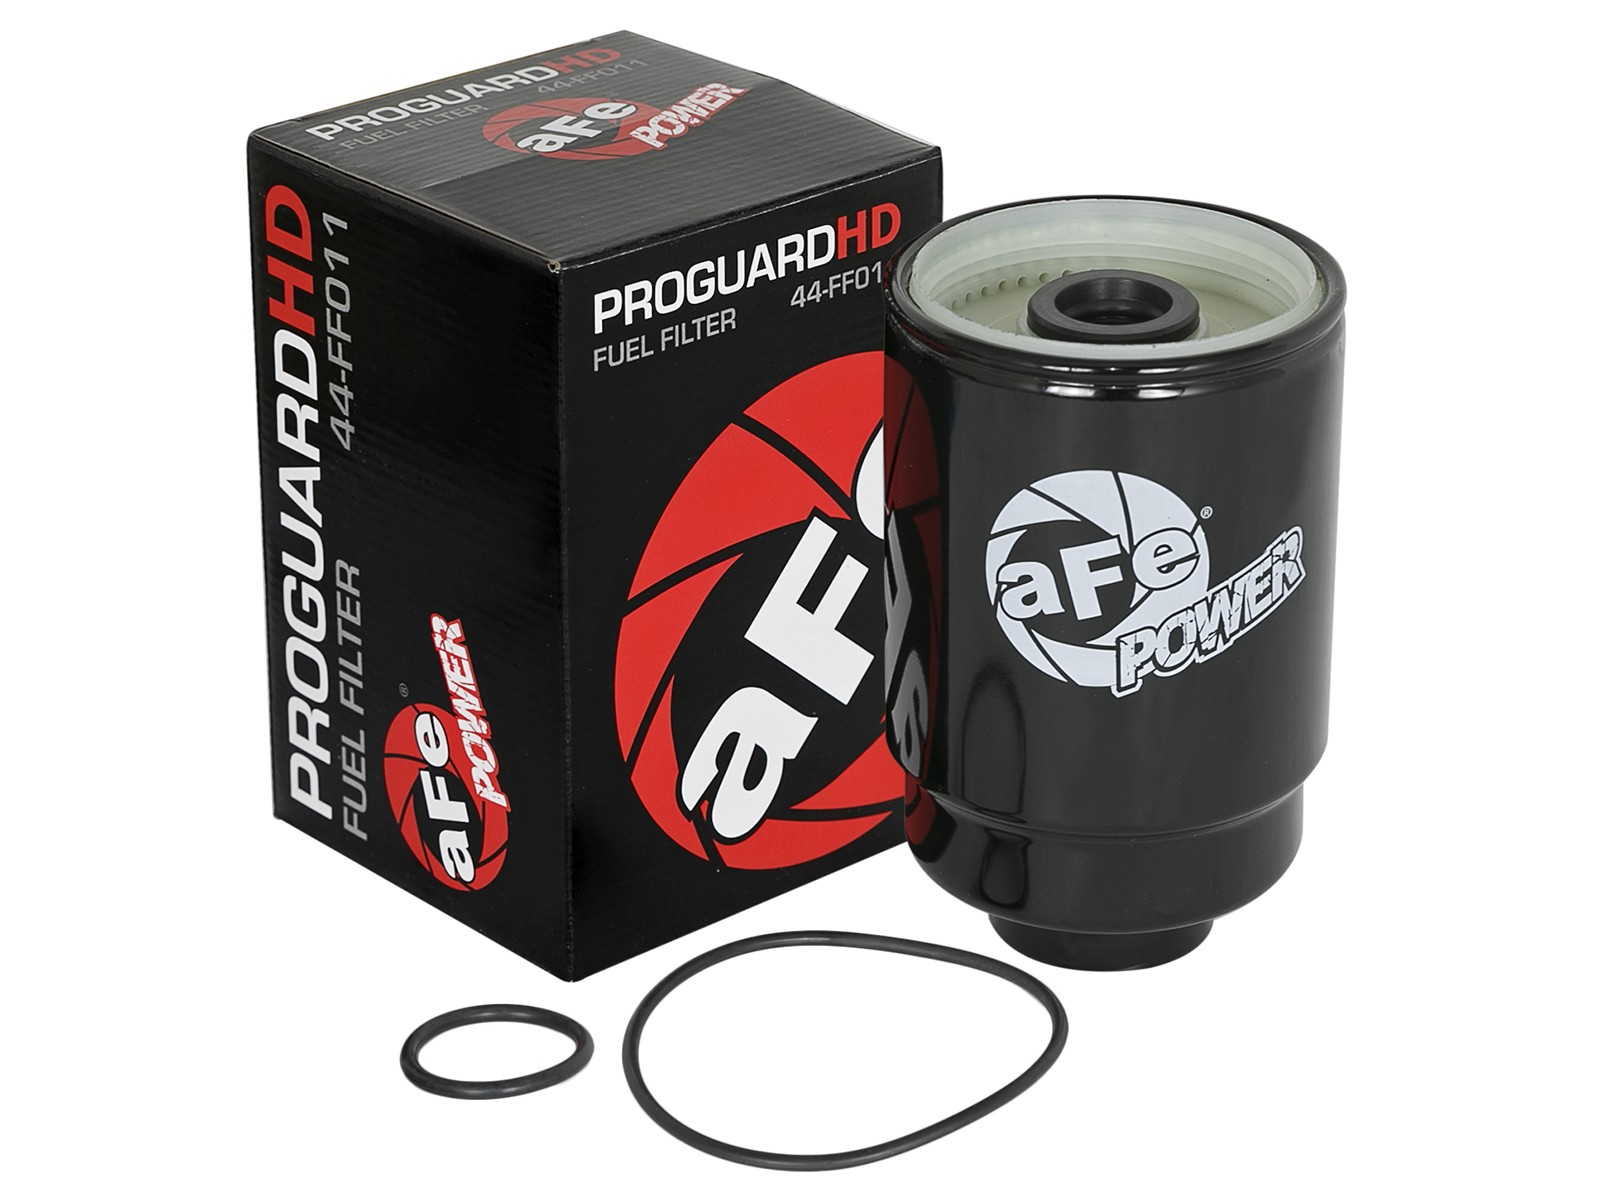 Pro Guard Hd Fuel Filter Afe Power